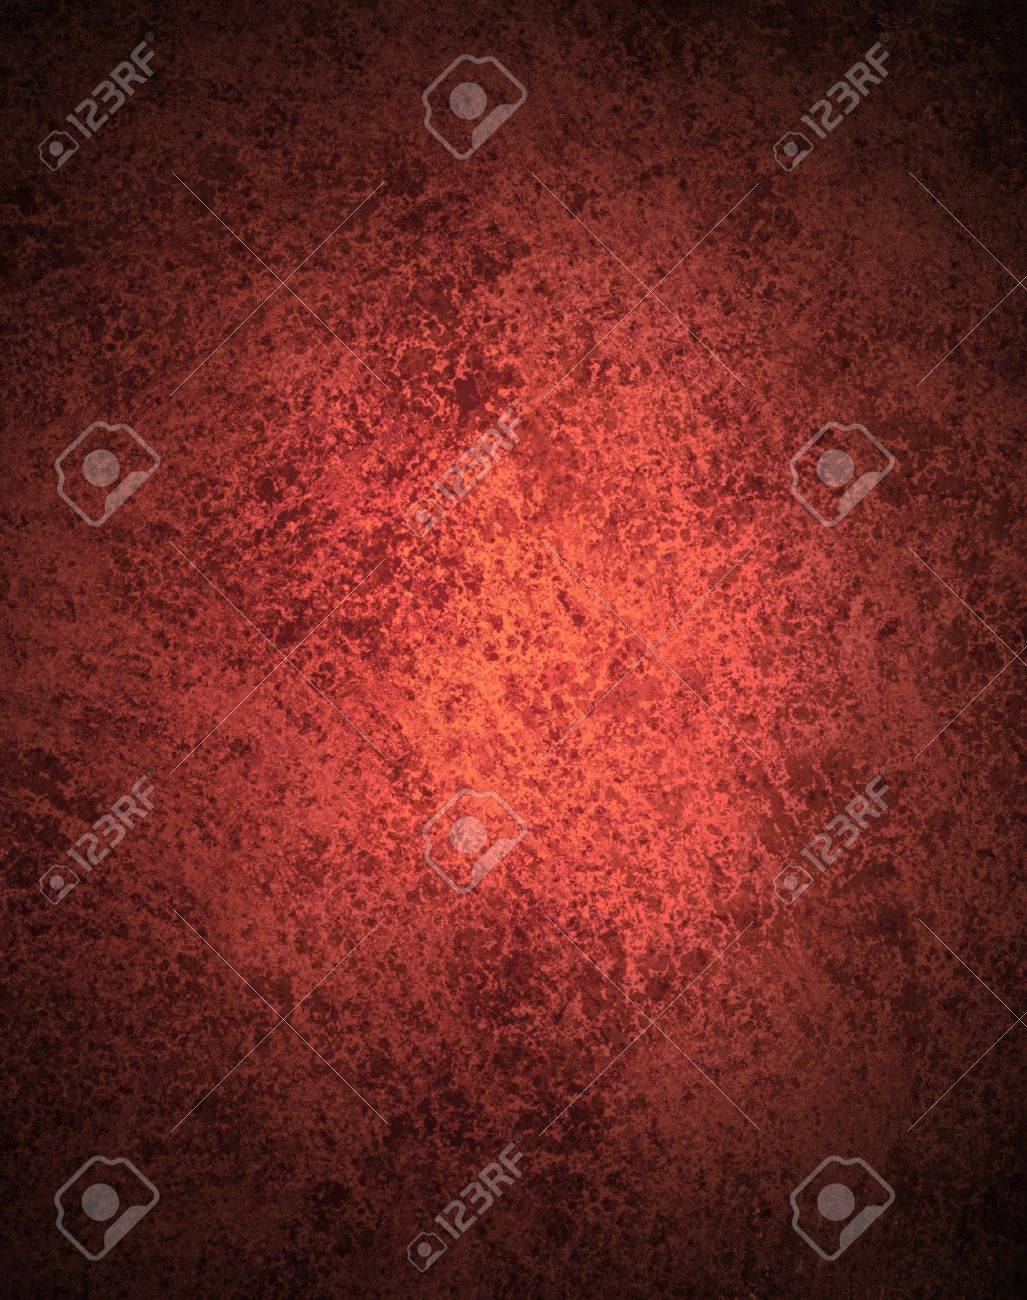 Stock Photo - abstract red